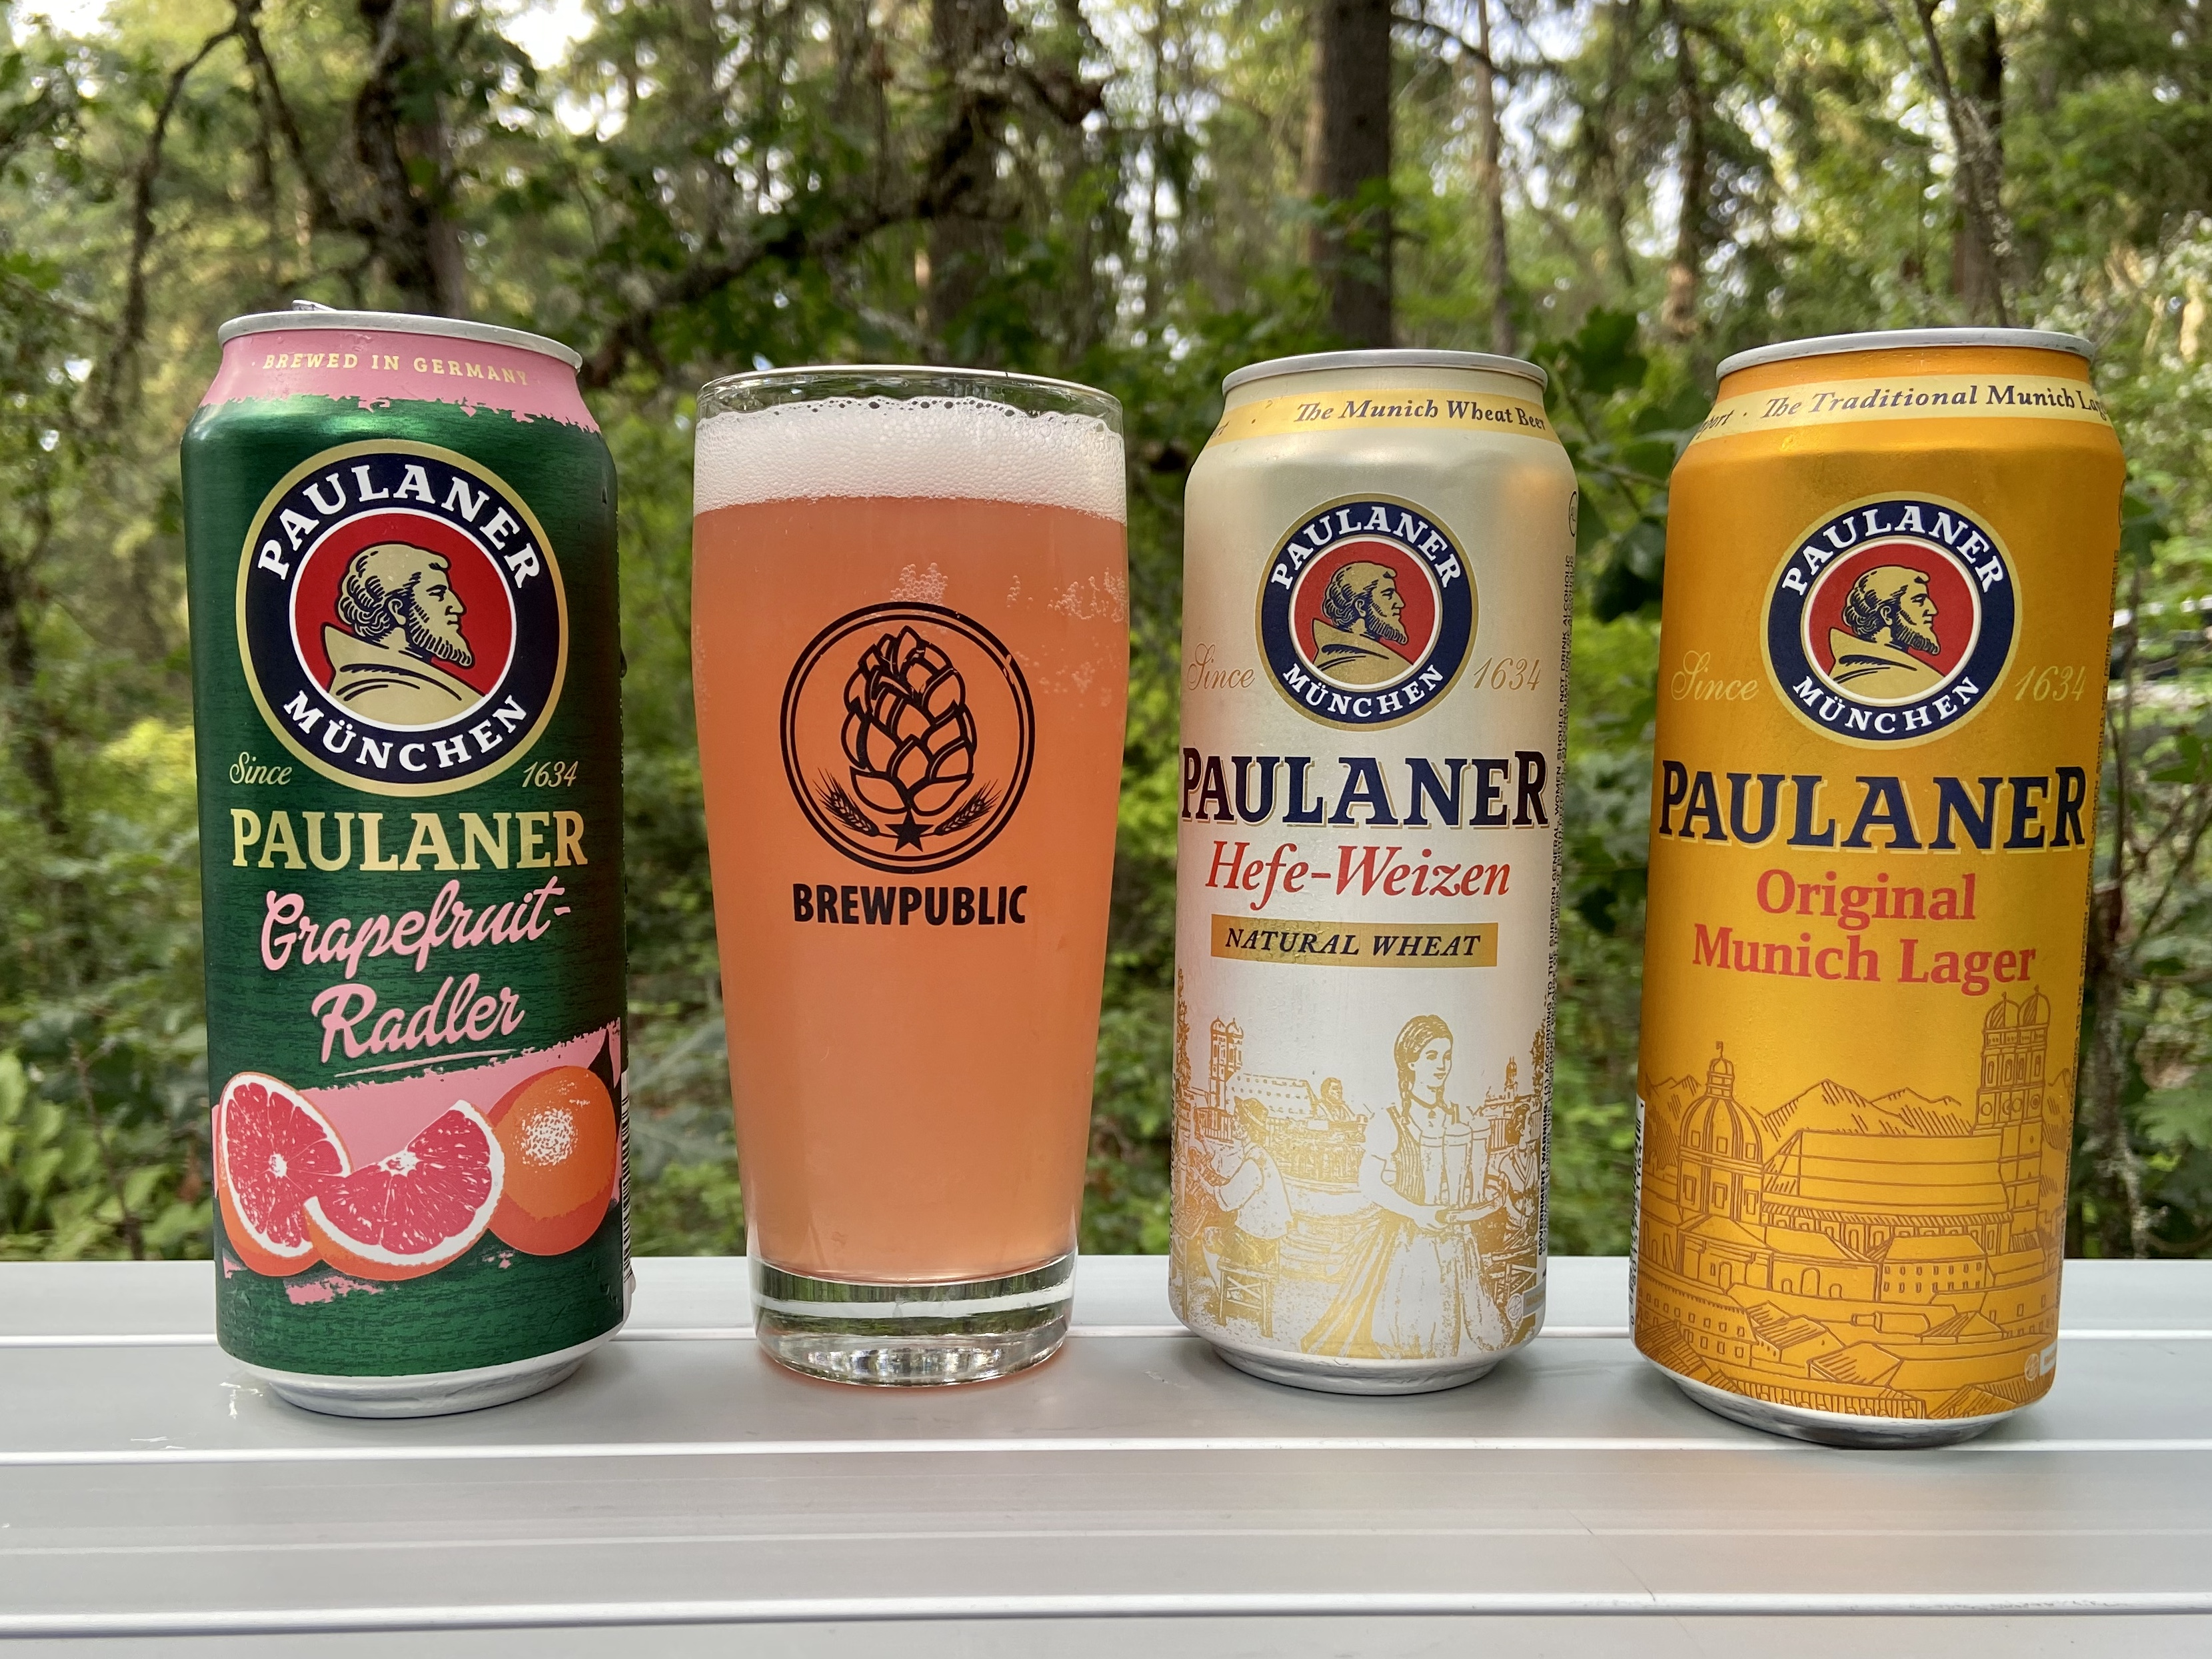 An assortment of beer from Paulaner - Paulaner Grapefruit Radler, Paulaner Hefe-Weizen, and Paulaner Original Munich Lager